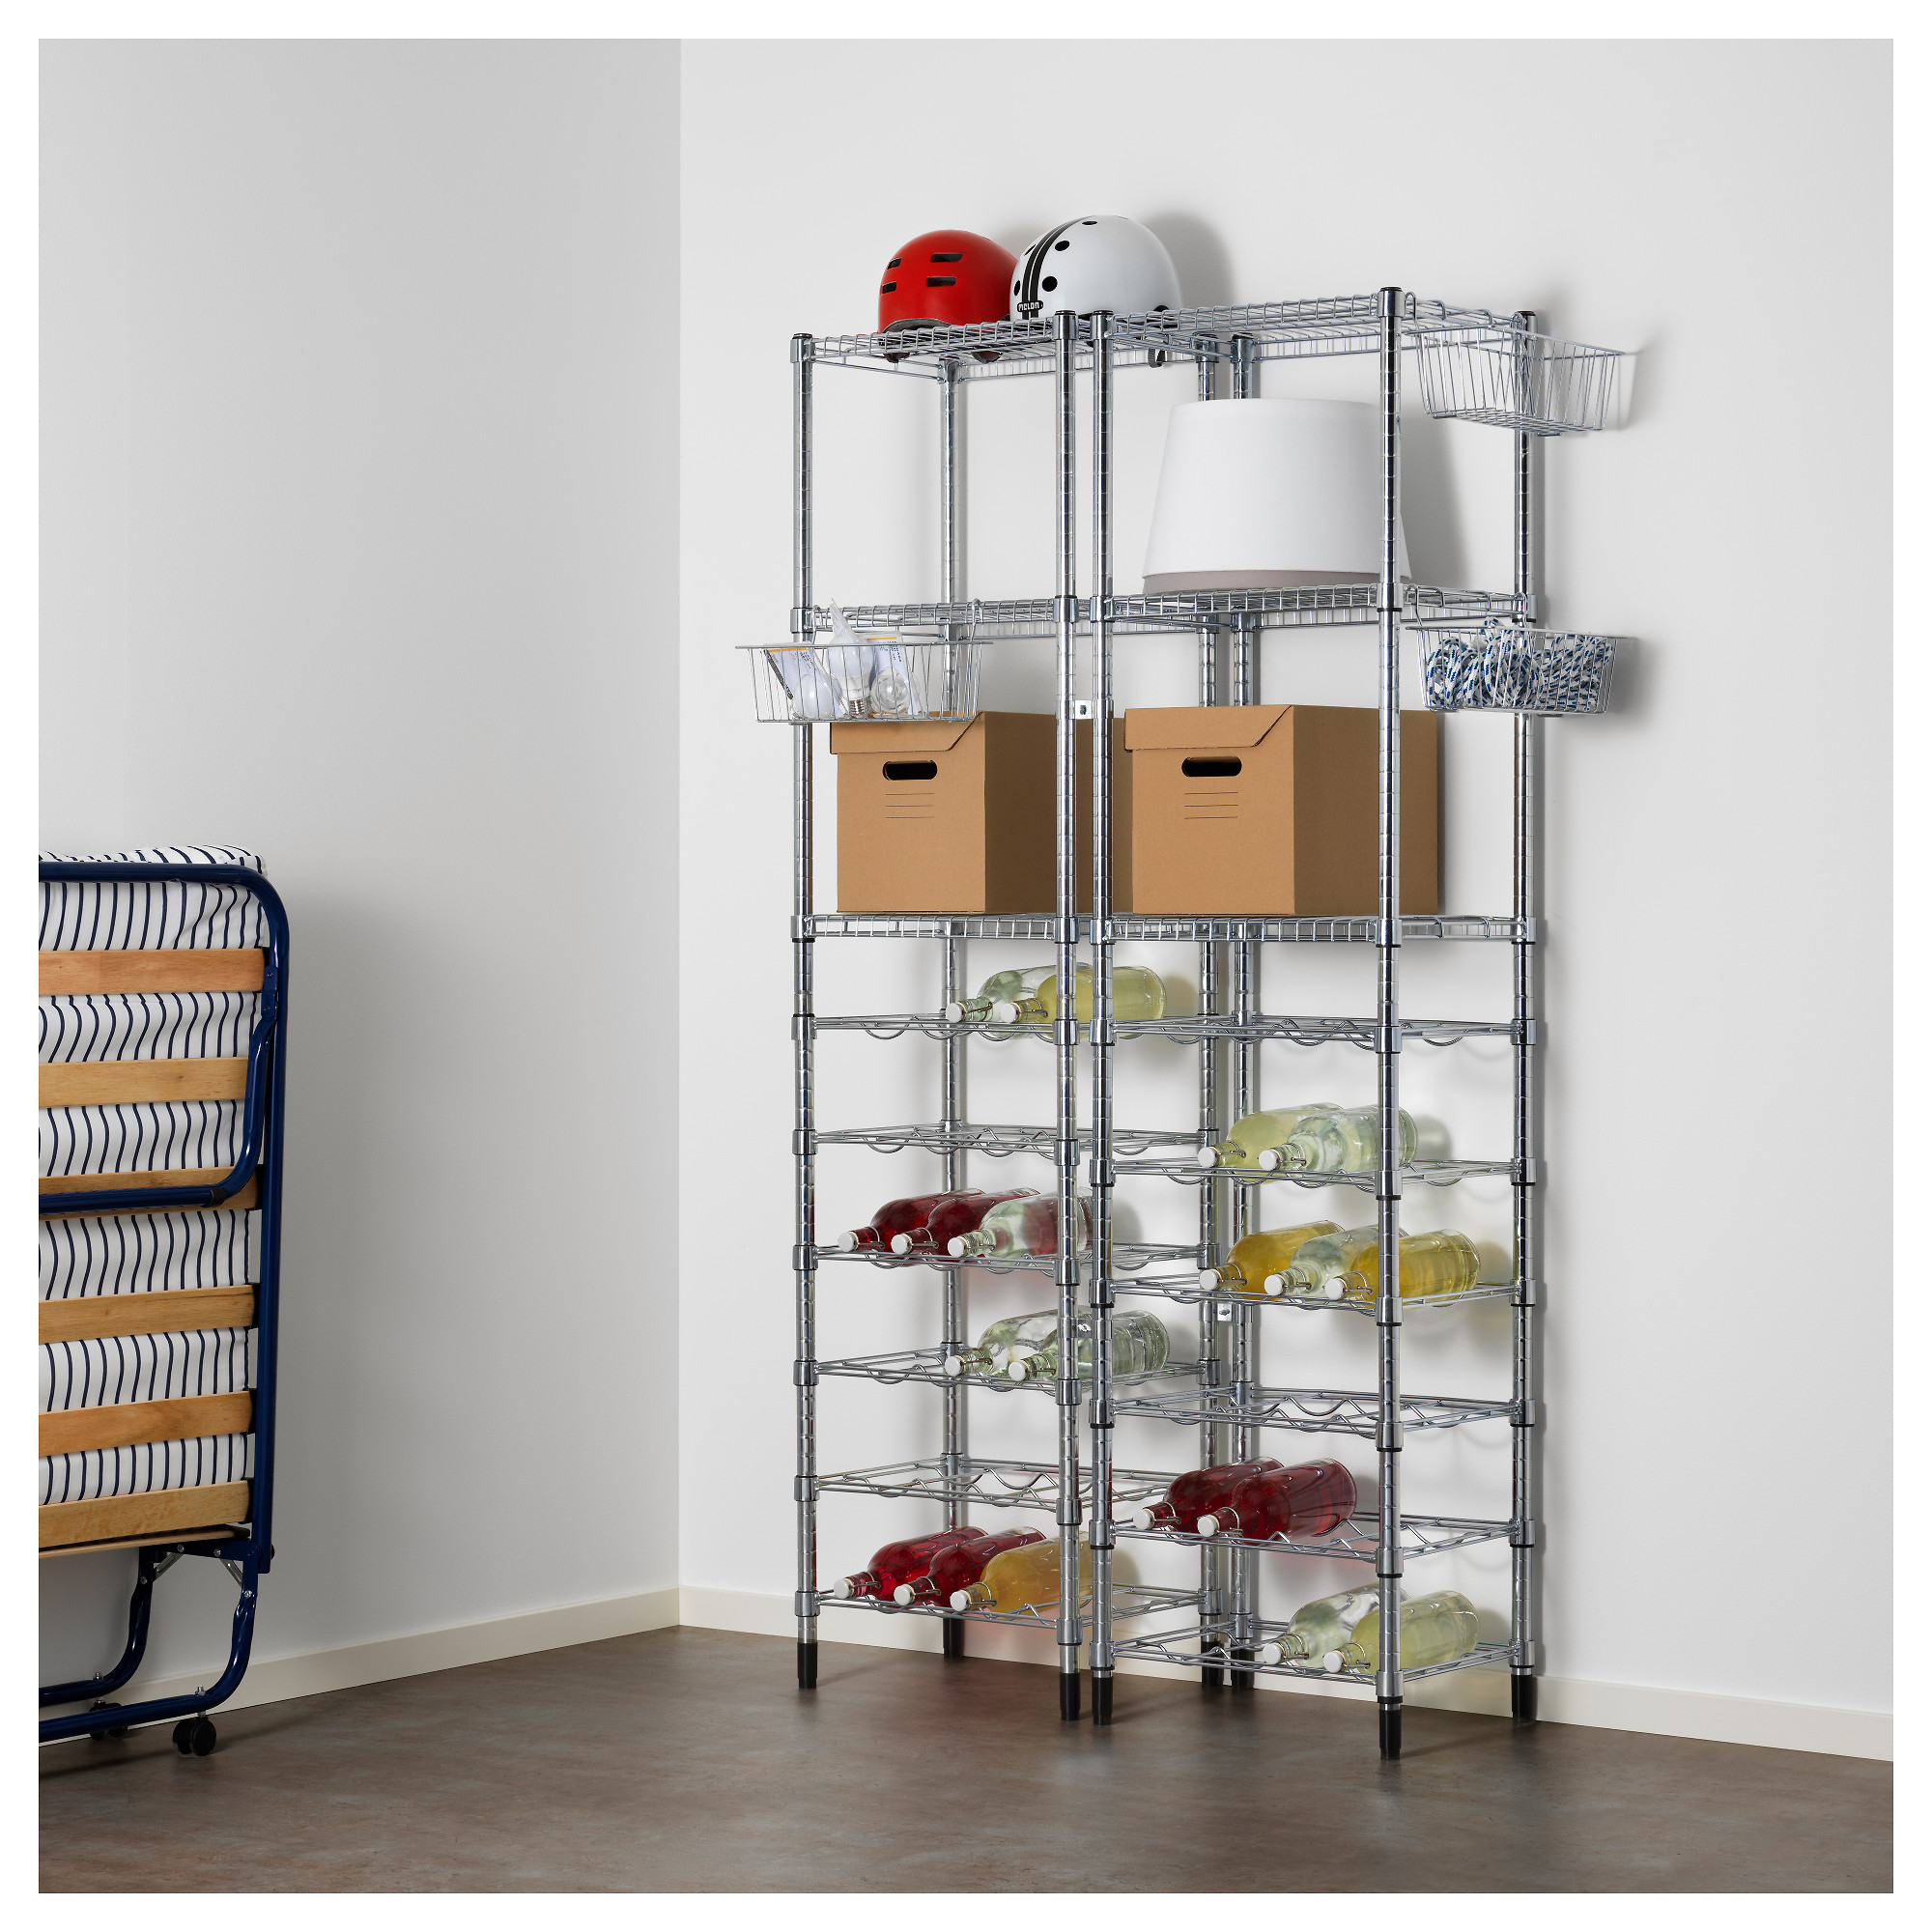 Pantry ikea omar 2 section shelving unit width 42 18 depth 14 1 amipublicfo Gallery